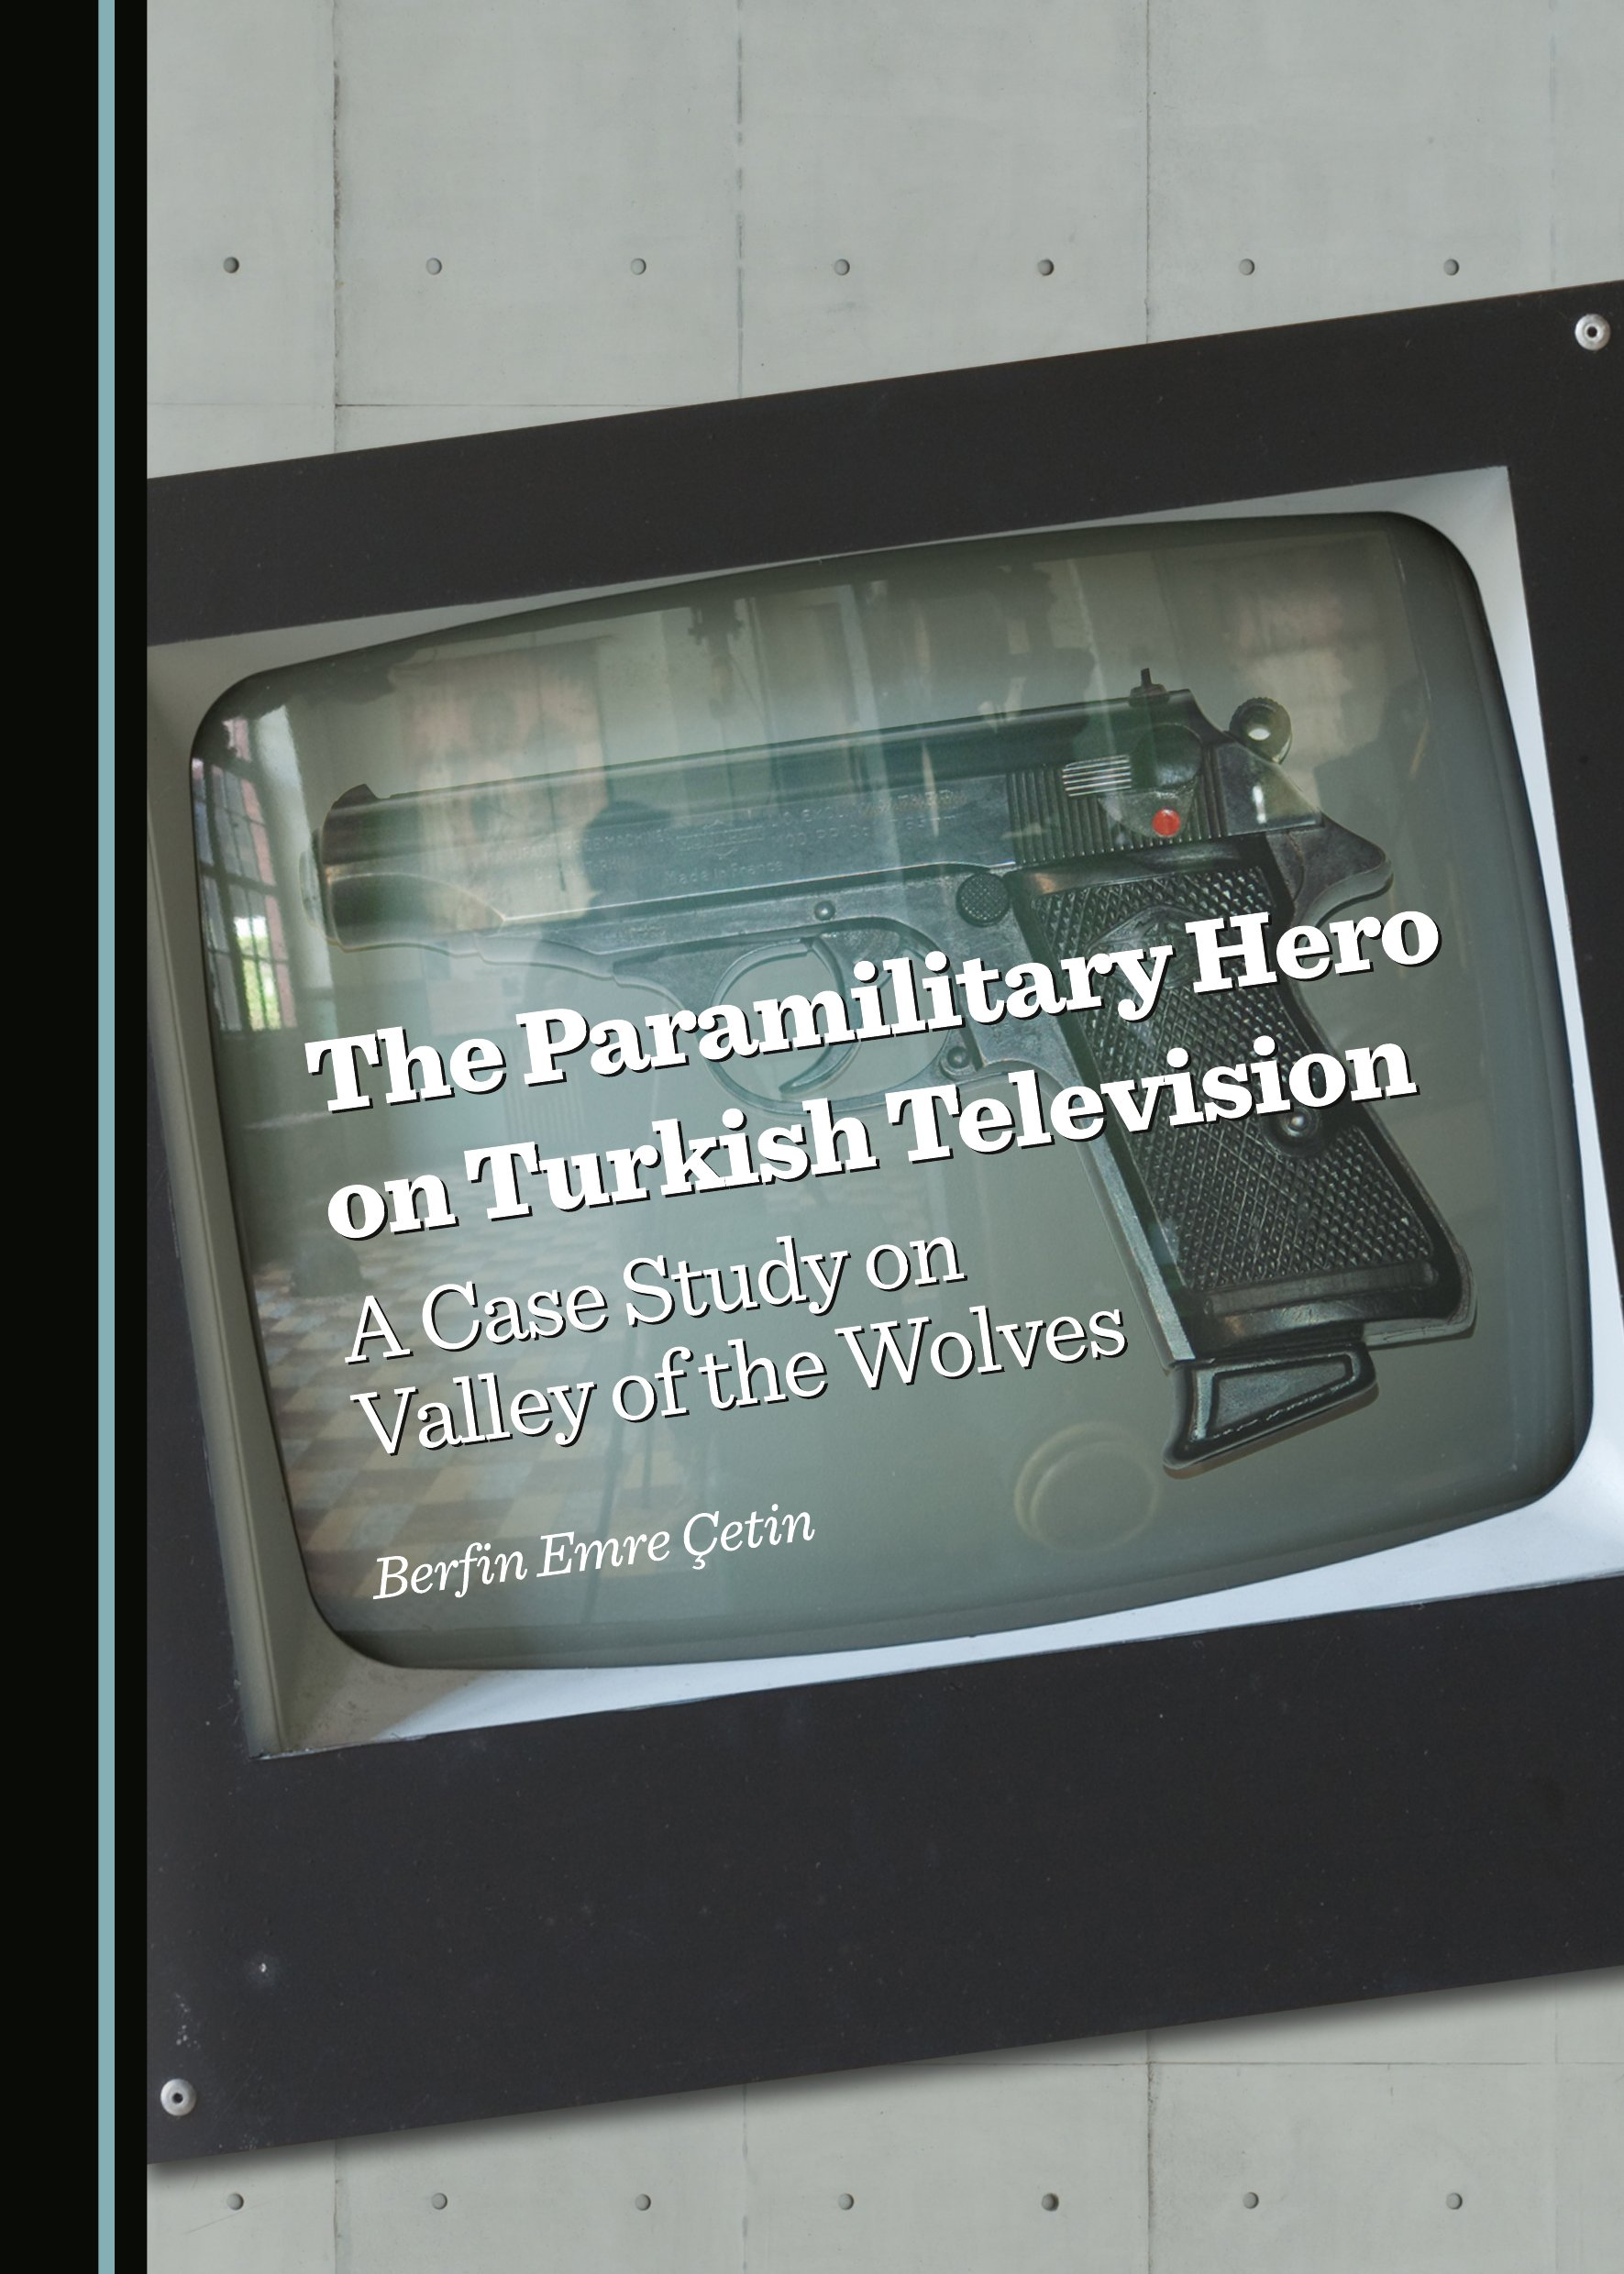 The Paramilitary Hero on Turkish Television: A Case Study on Valley of the Wolves